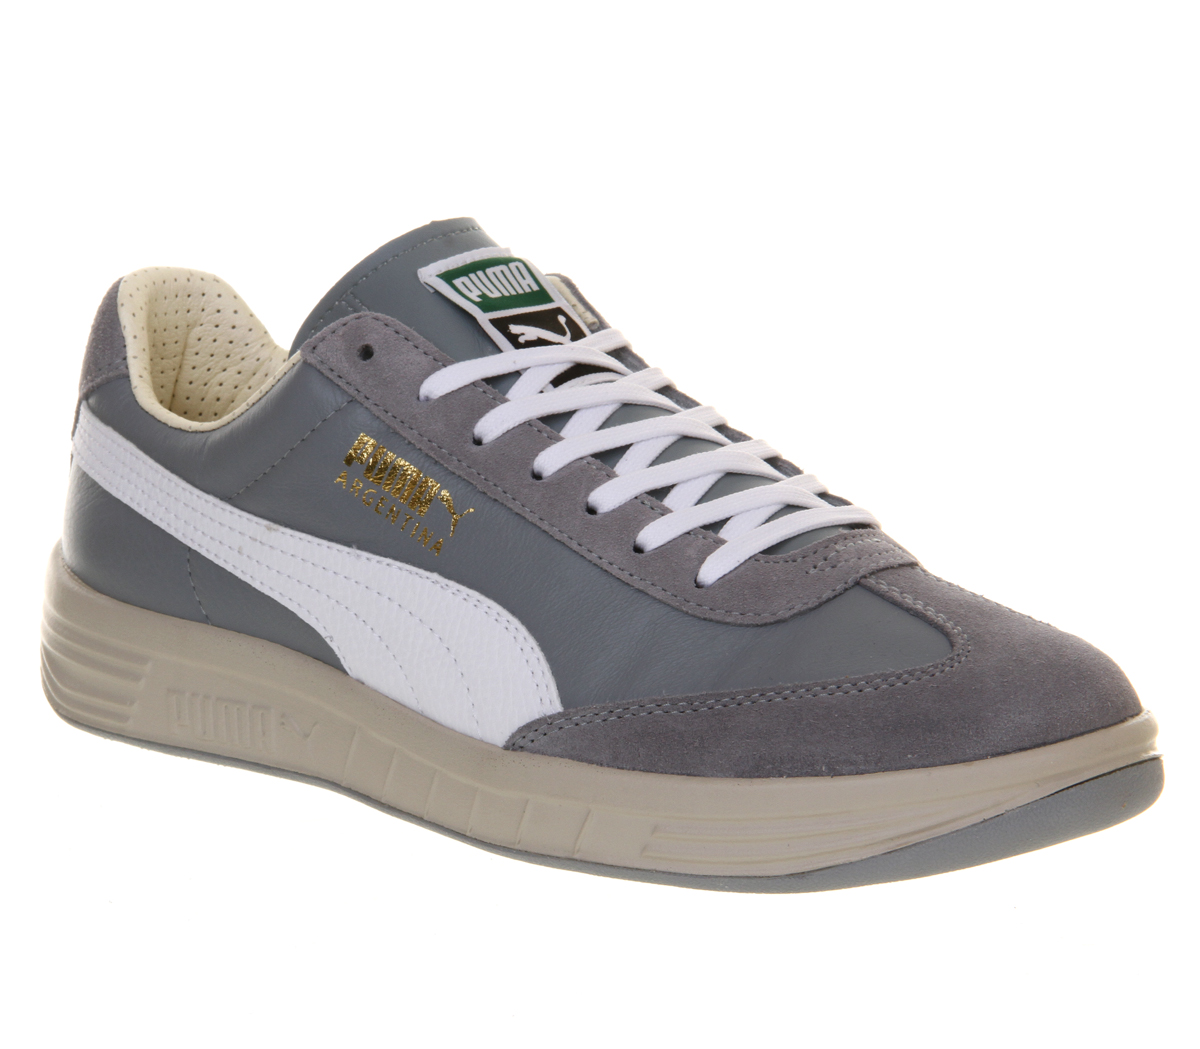 Puma Unisex Classic Suede Lace Up Trainer Steeple Grey / White-Grey-4 Size 4 61ryR42pb